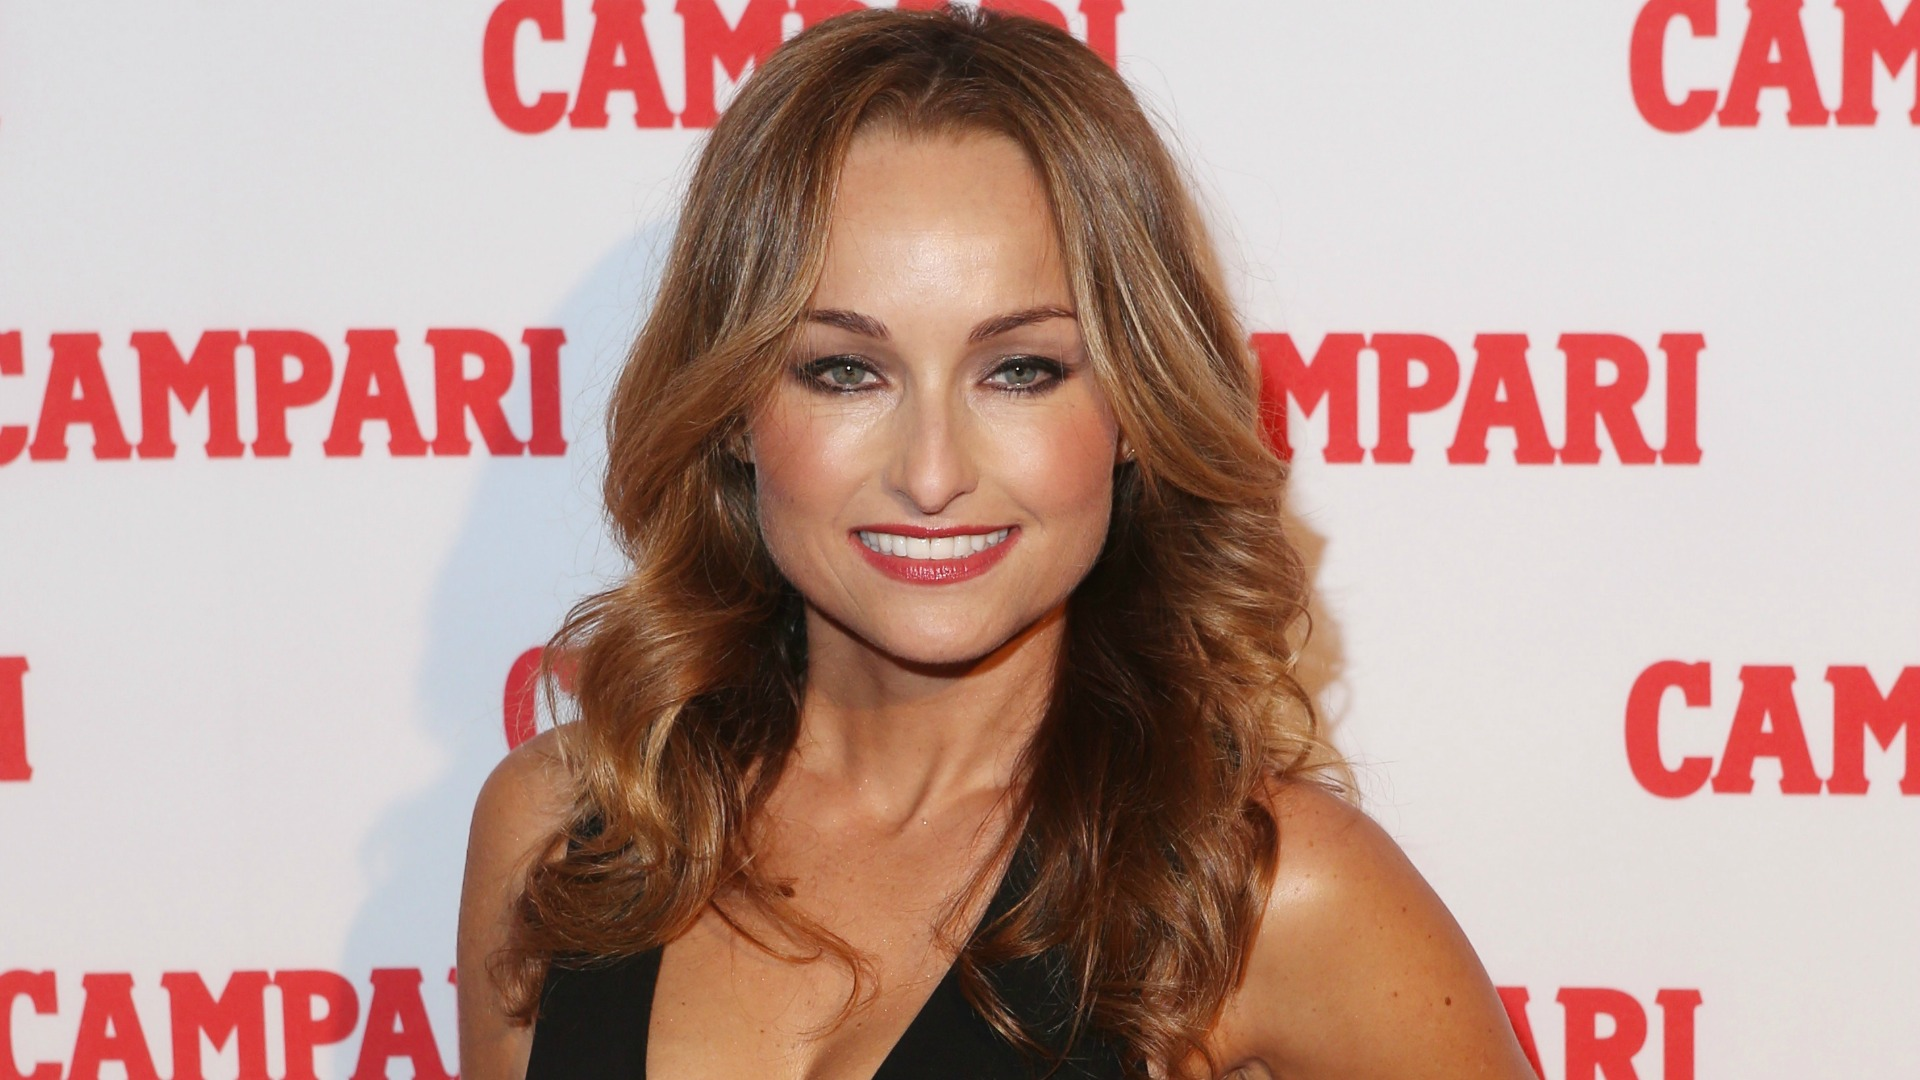 14 Things About Giada De Laurentiis You Probably Never Knew Sheknows